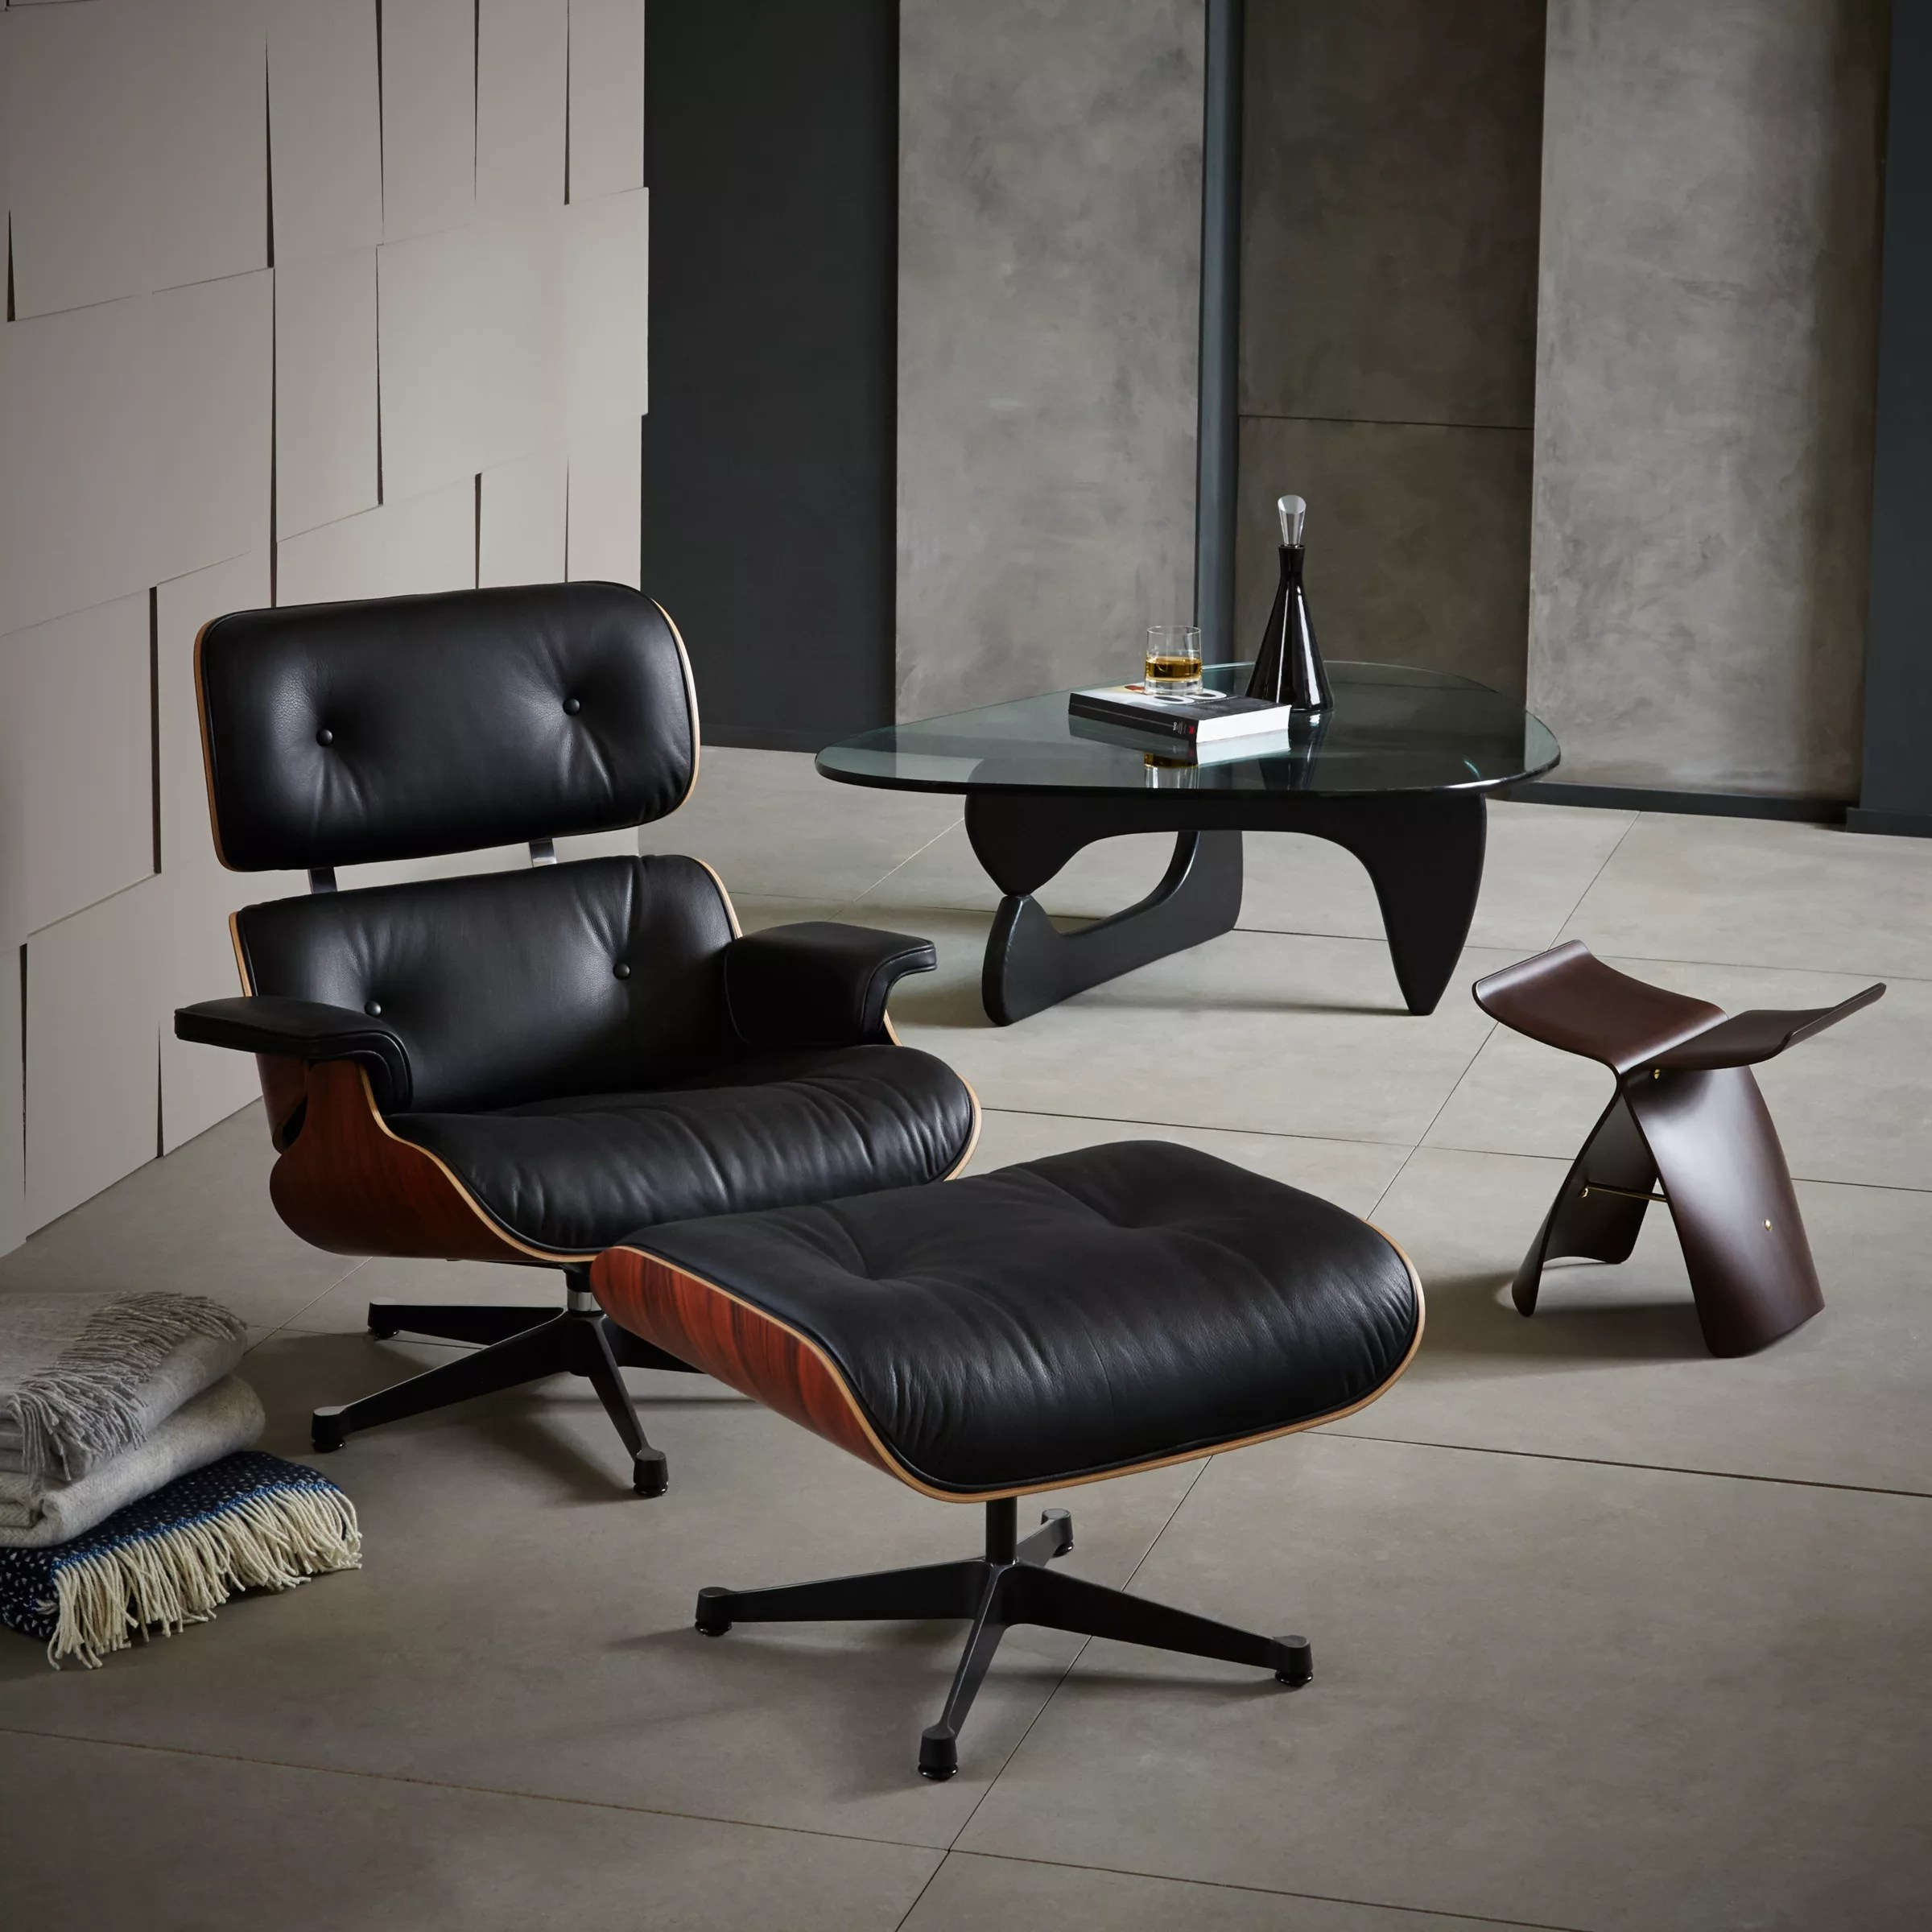 Eames Chair Replica Ebay Used Eames Chair Vancouver Eames Shell Chair Ebay Vintage